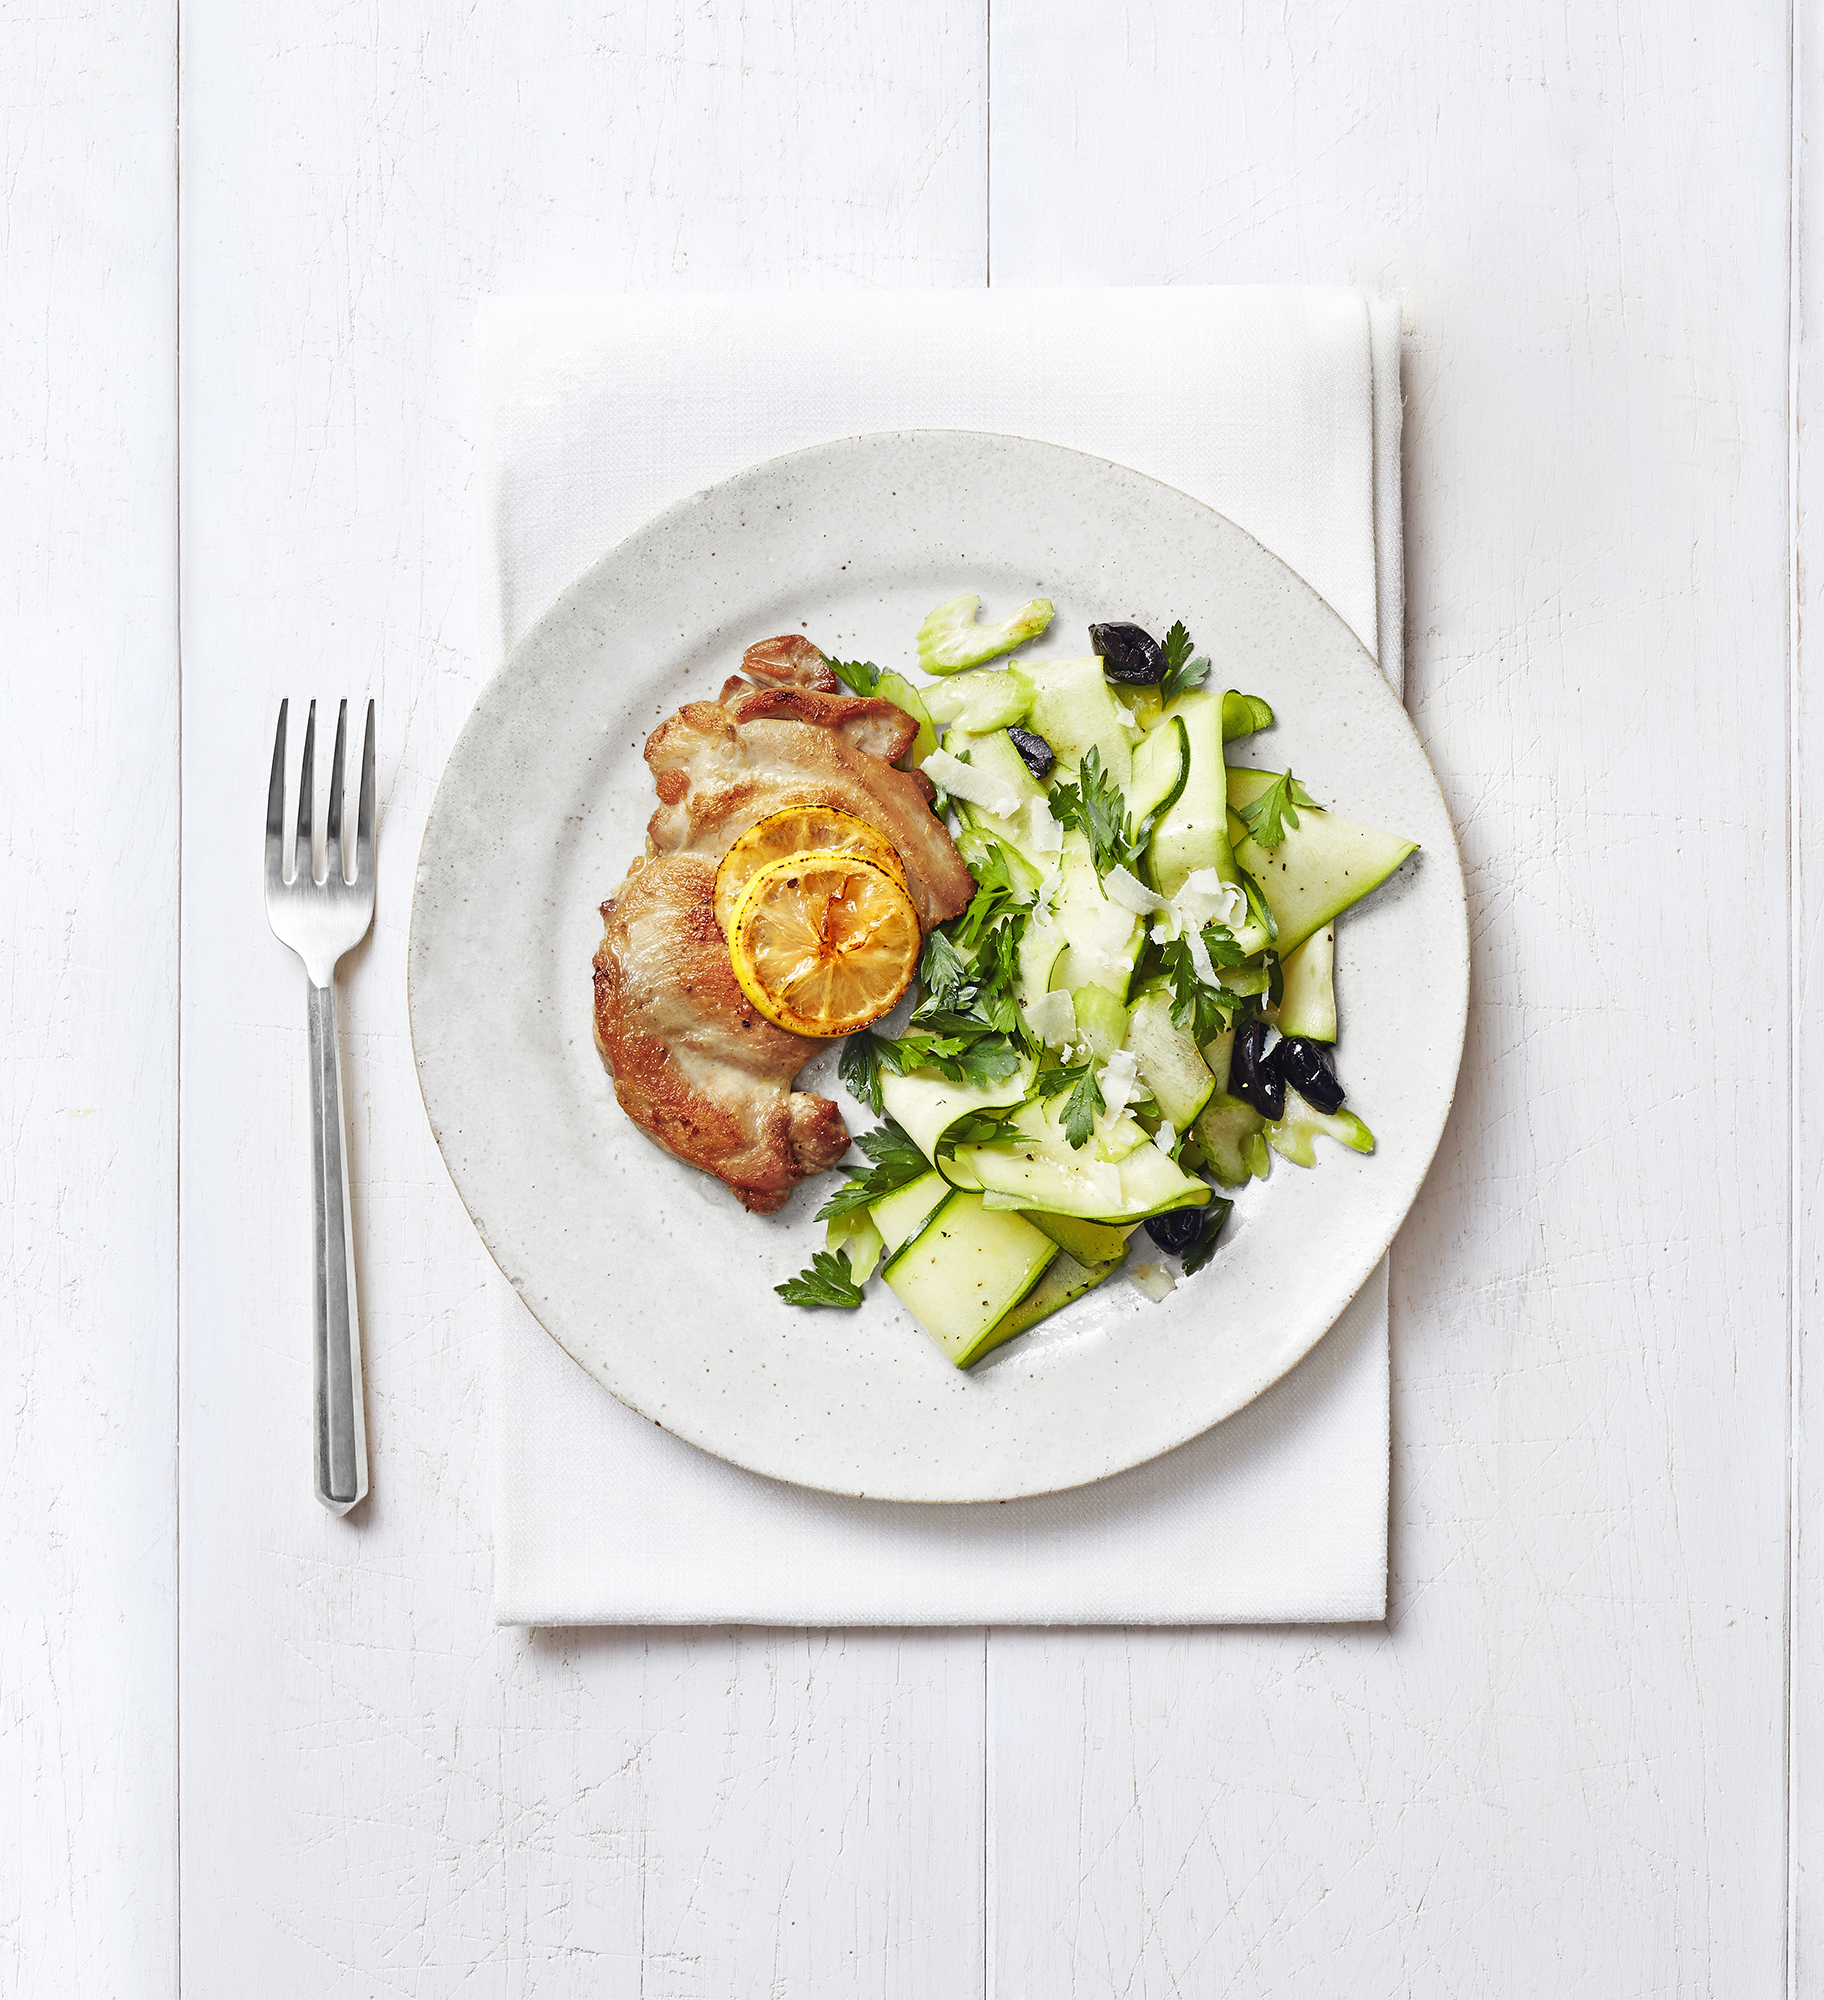 Chicken Thigh Cutlets with Zucchini, Celery, and Olive Salad